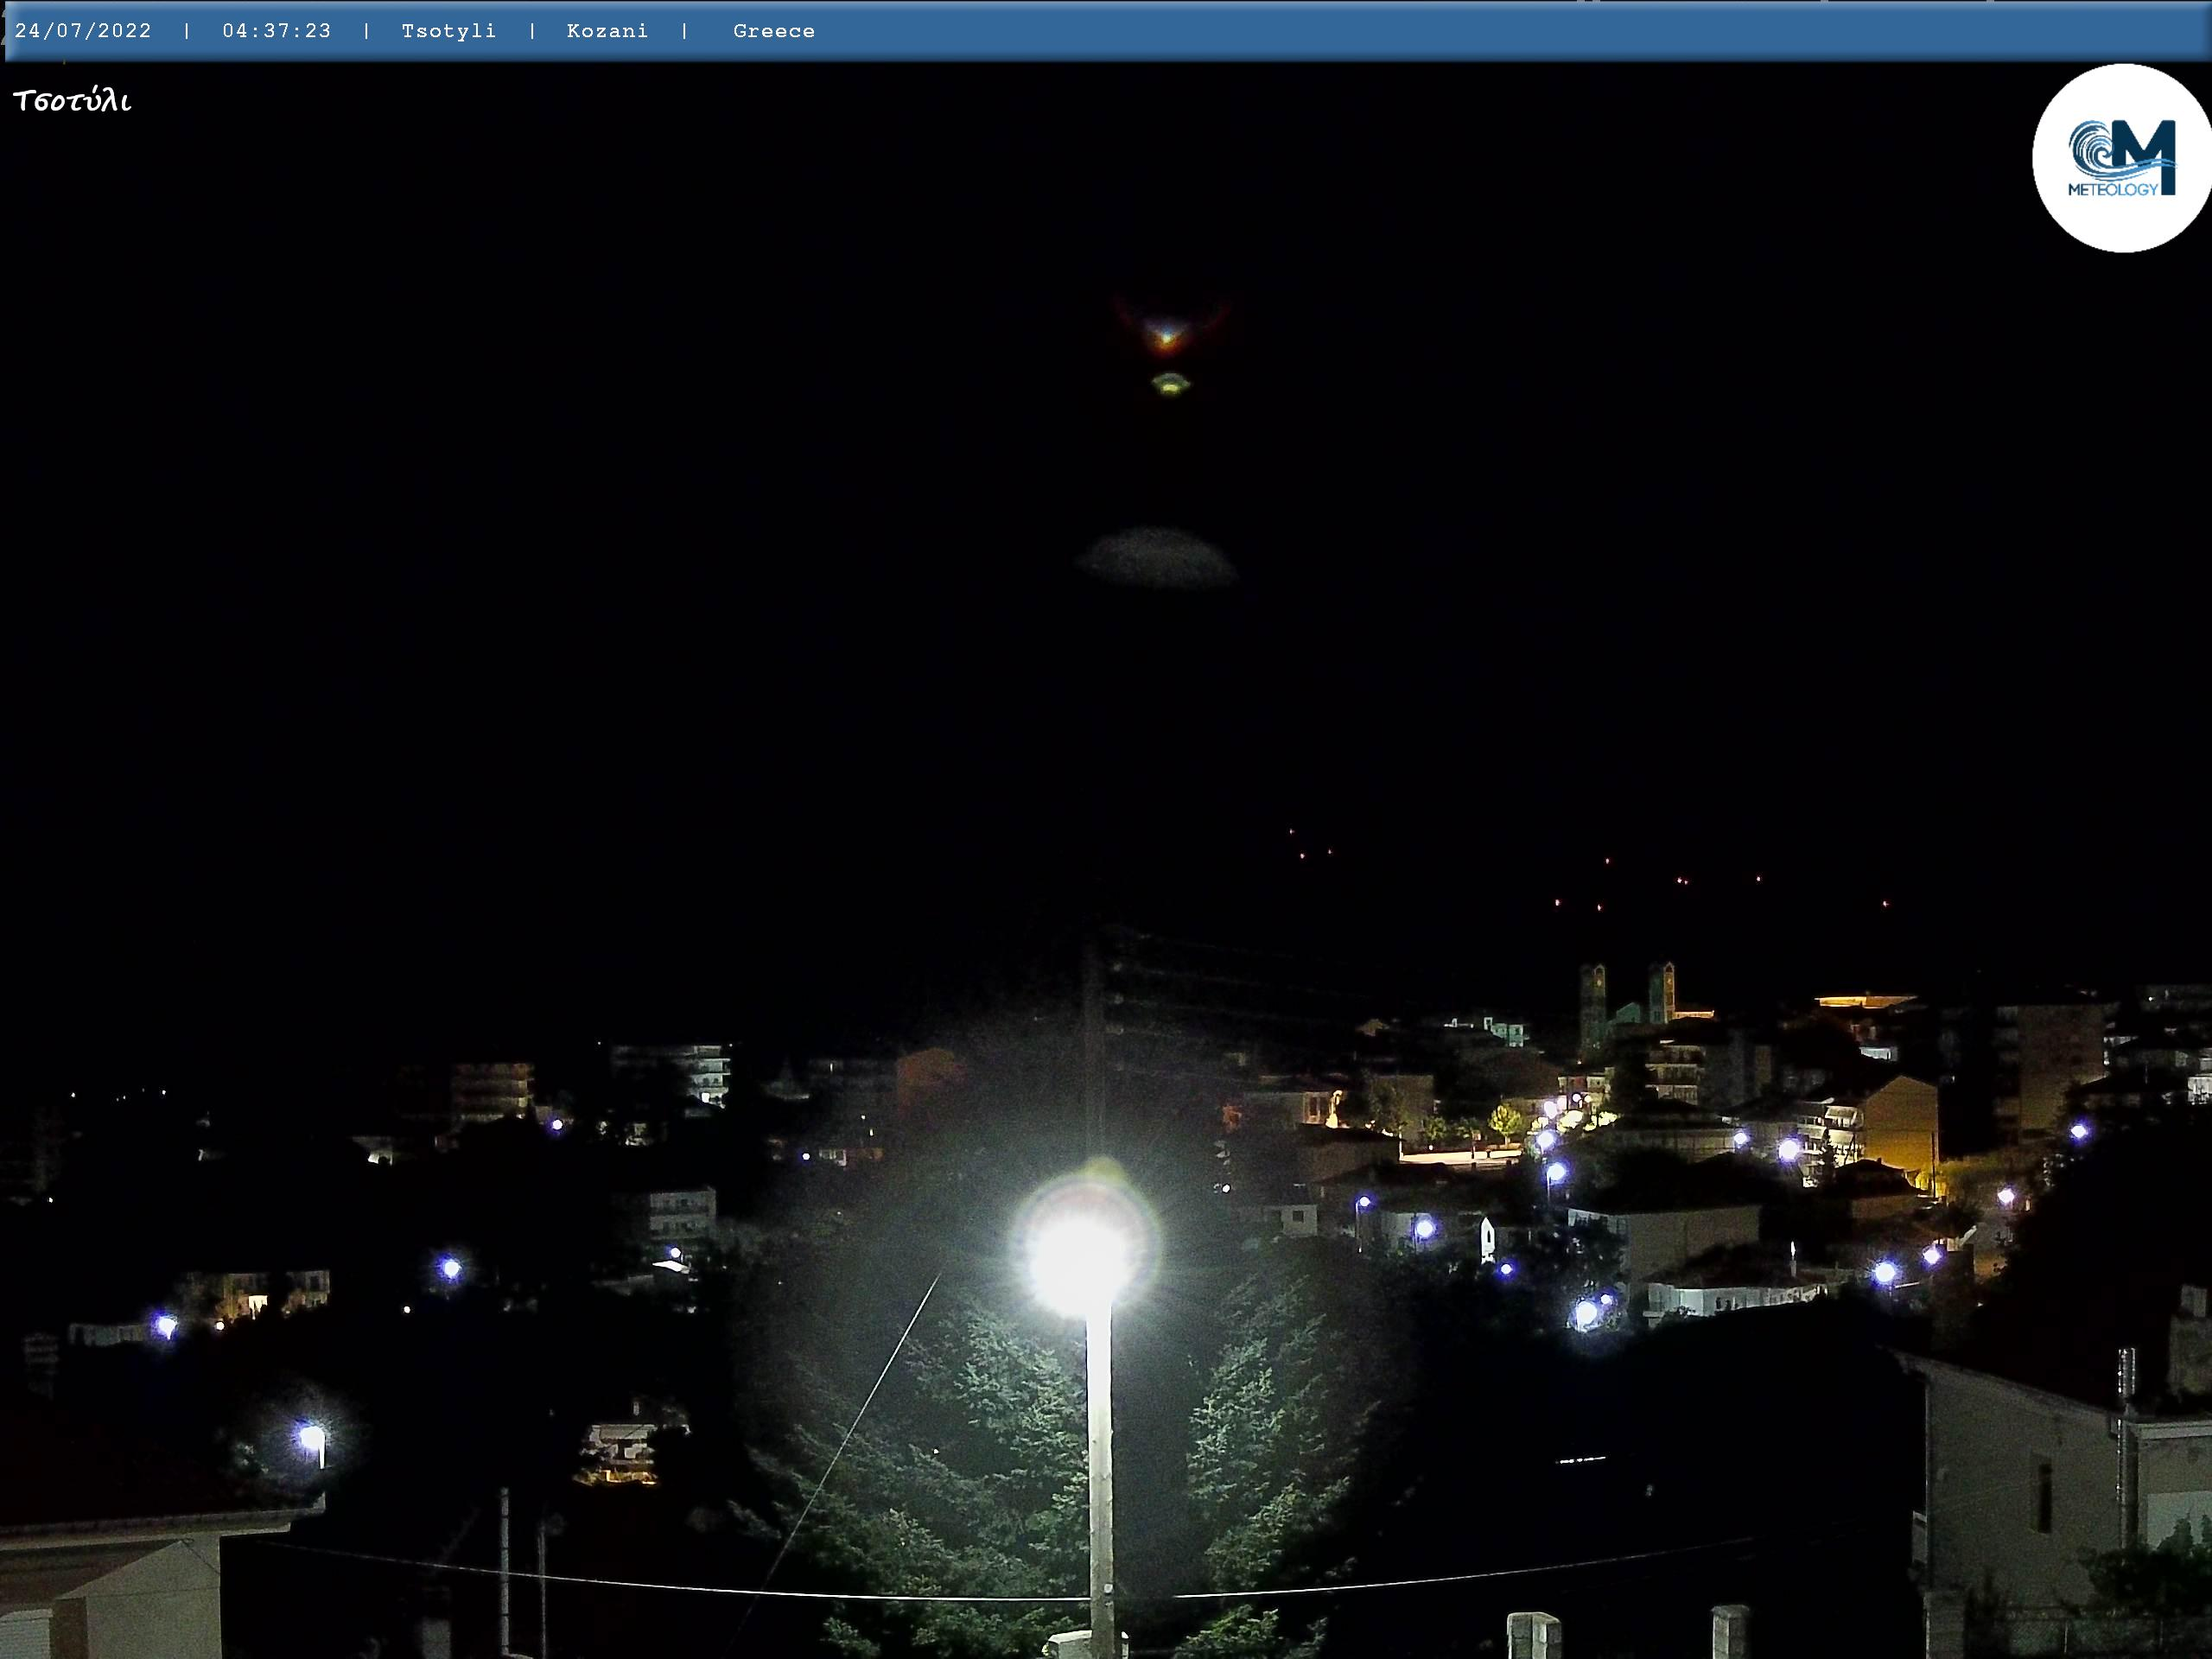 Webcam Tsotyli - Kozani